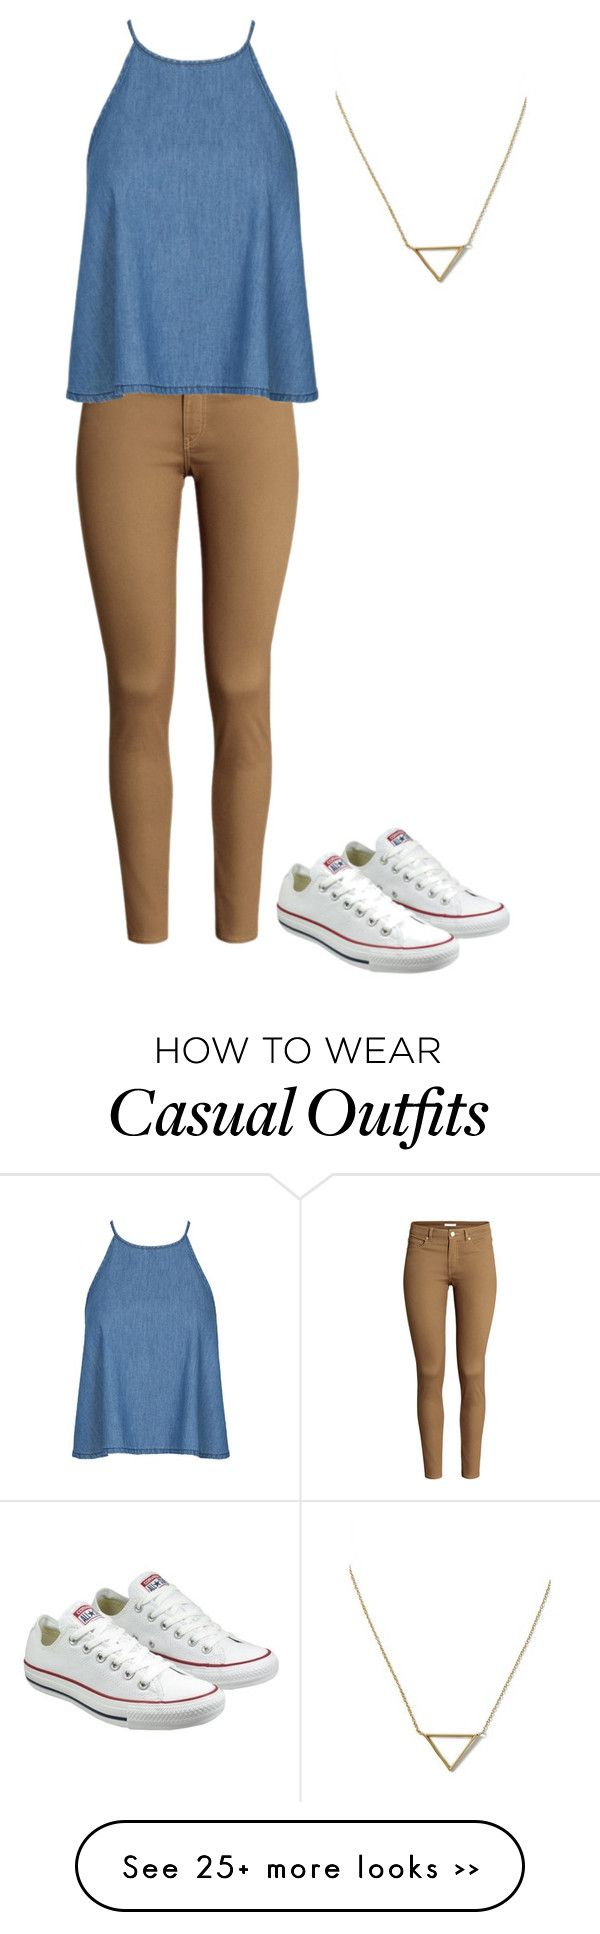 """Casual Friday"" by haleyl9902 on Polyvore featuring H&M, Converse and Banana Republic"